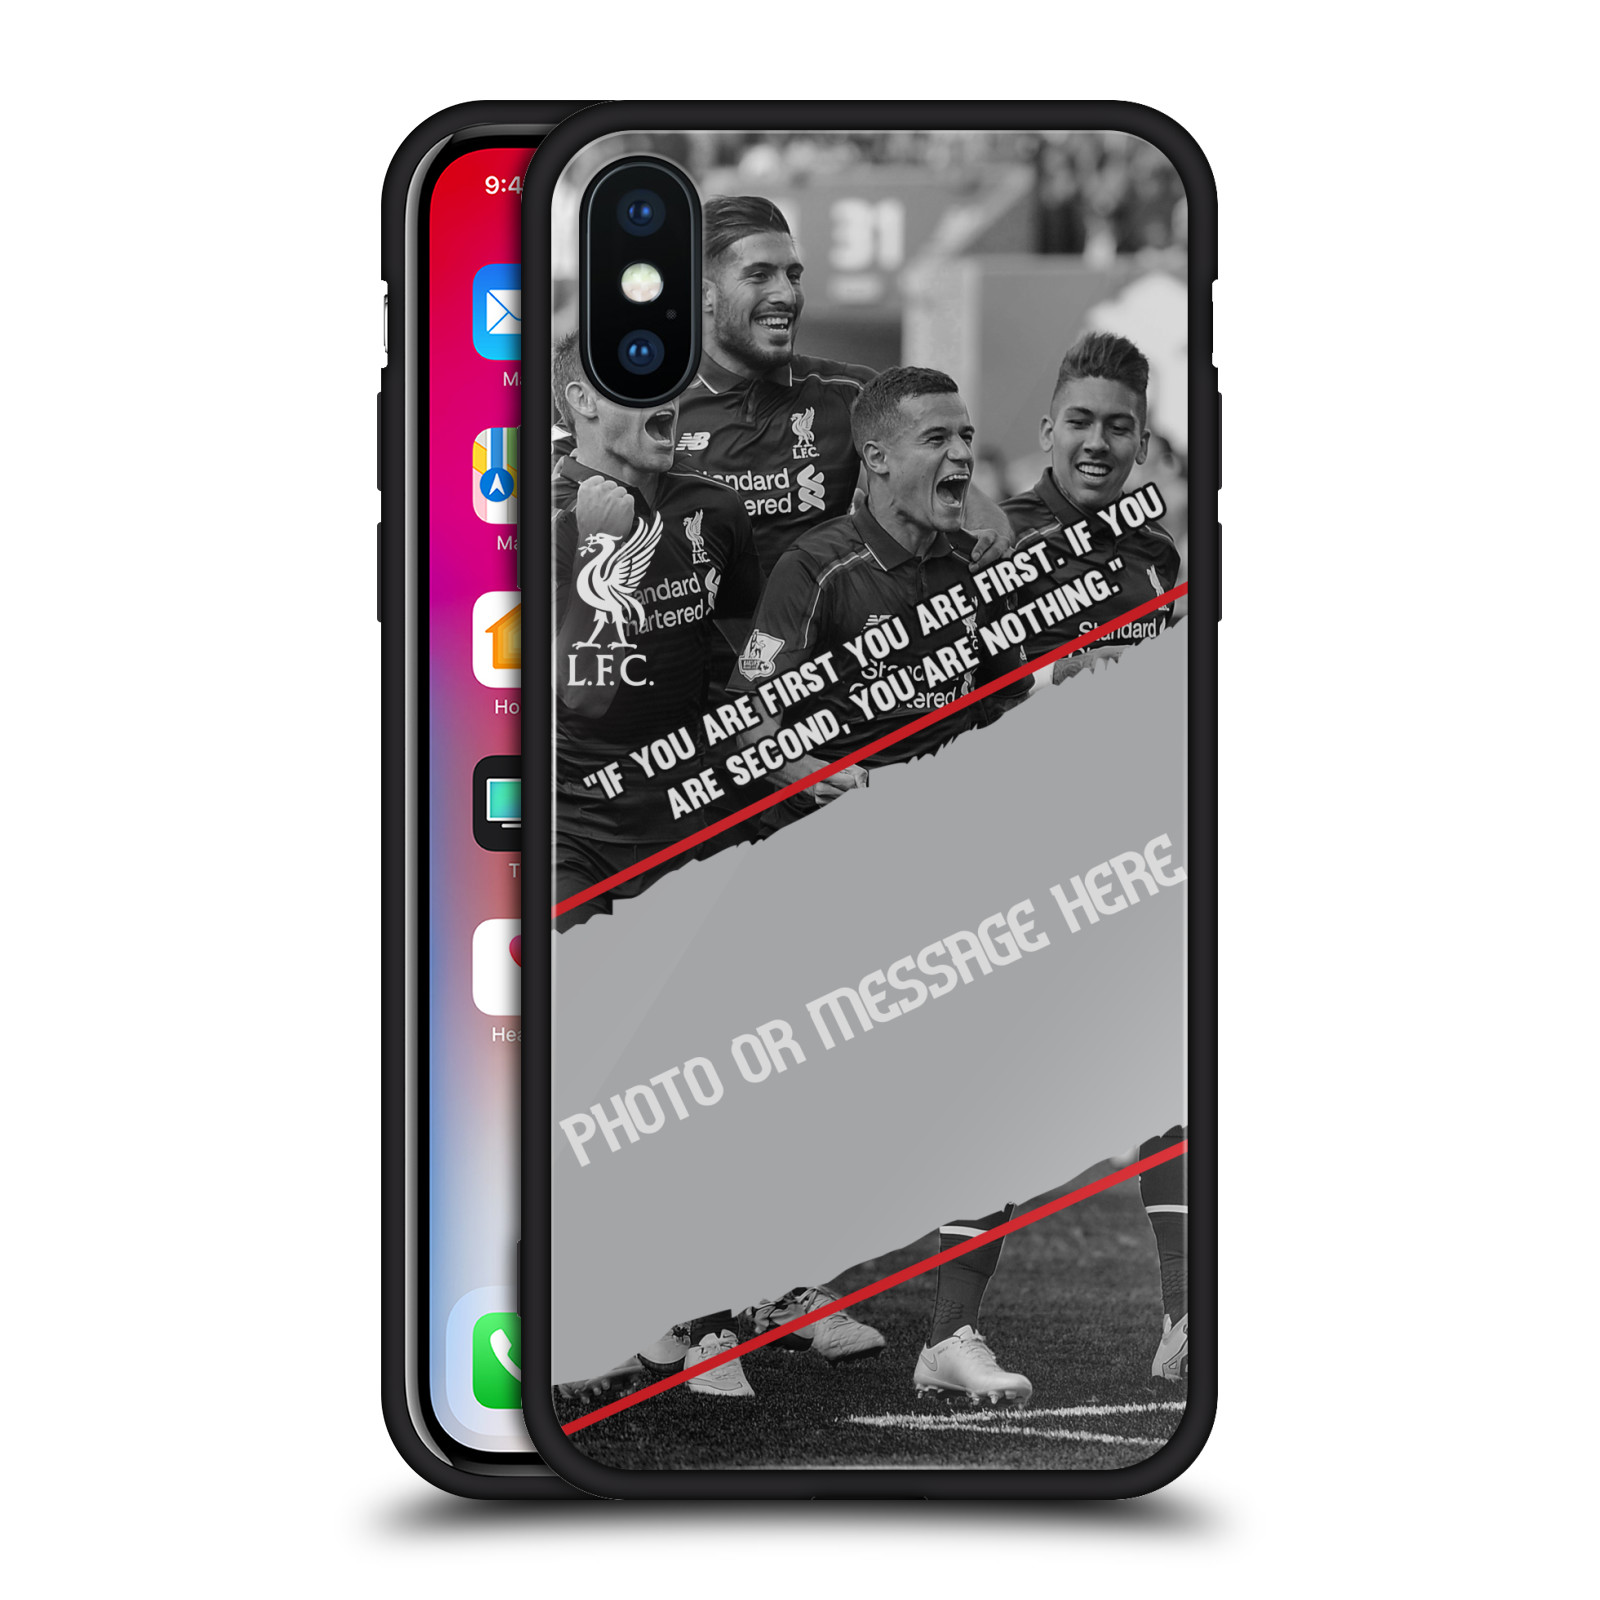 CUSTOM-LIVERPOOL-FC-LFC-LIVERPOOL-FC-BLACK-HYBRID-GLASS-CASE-FOR-iPHONE-PHONES